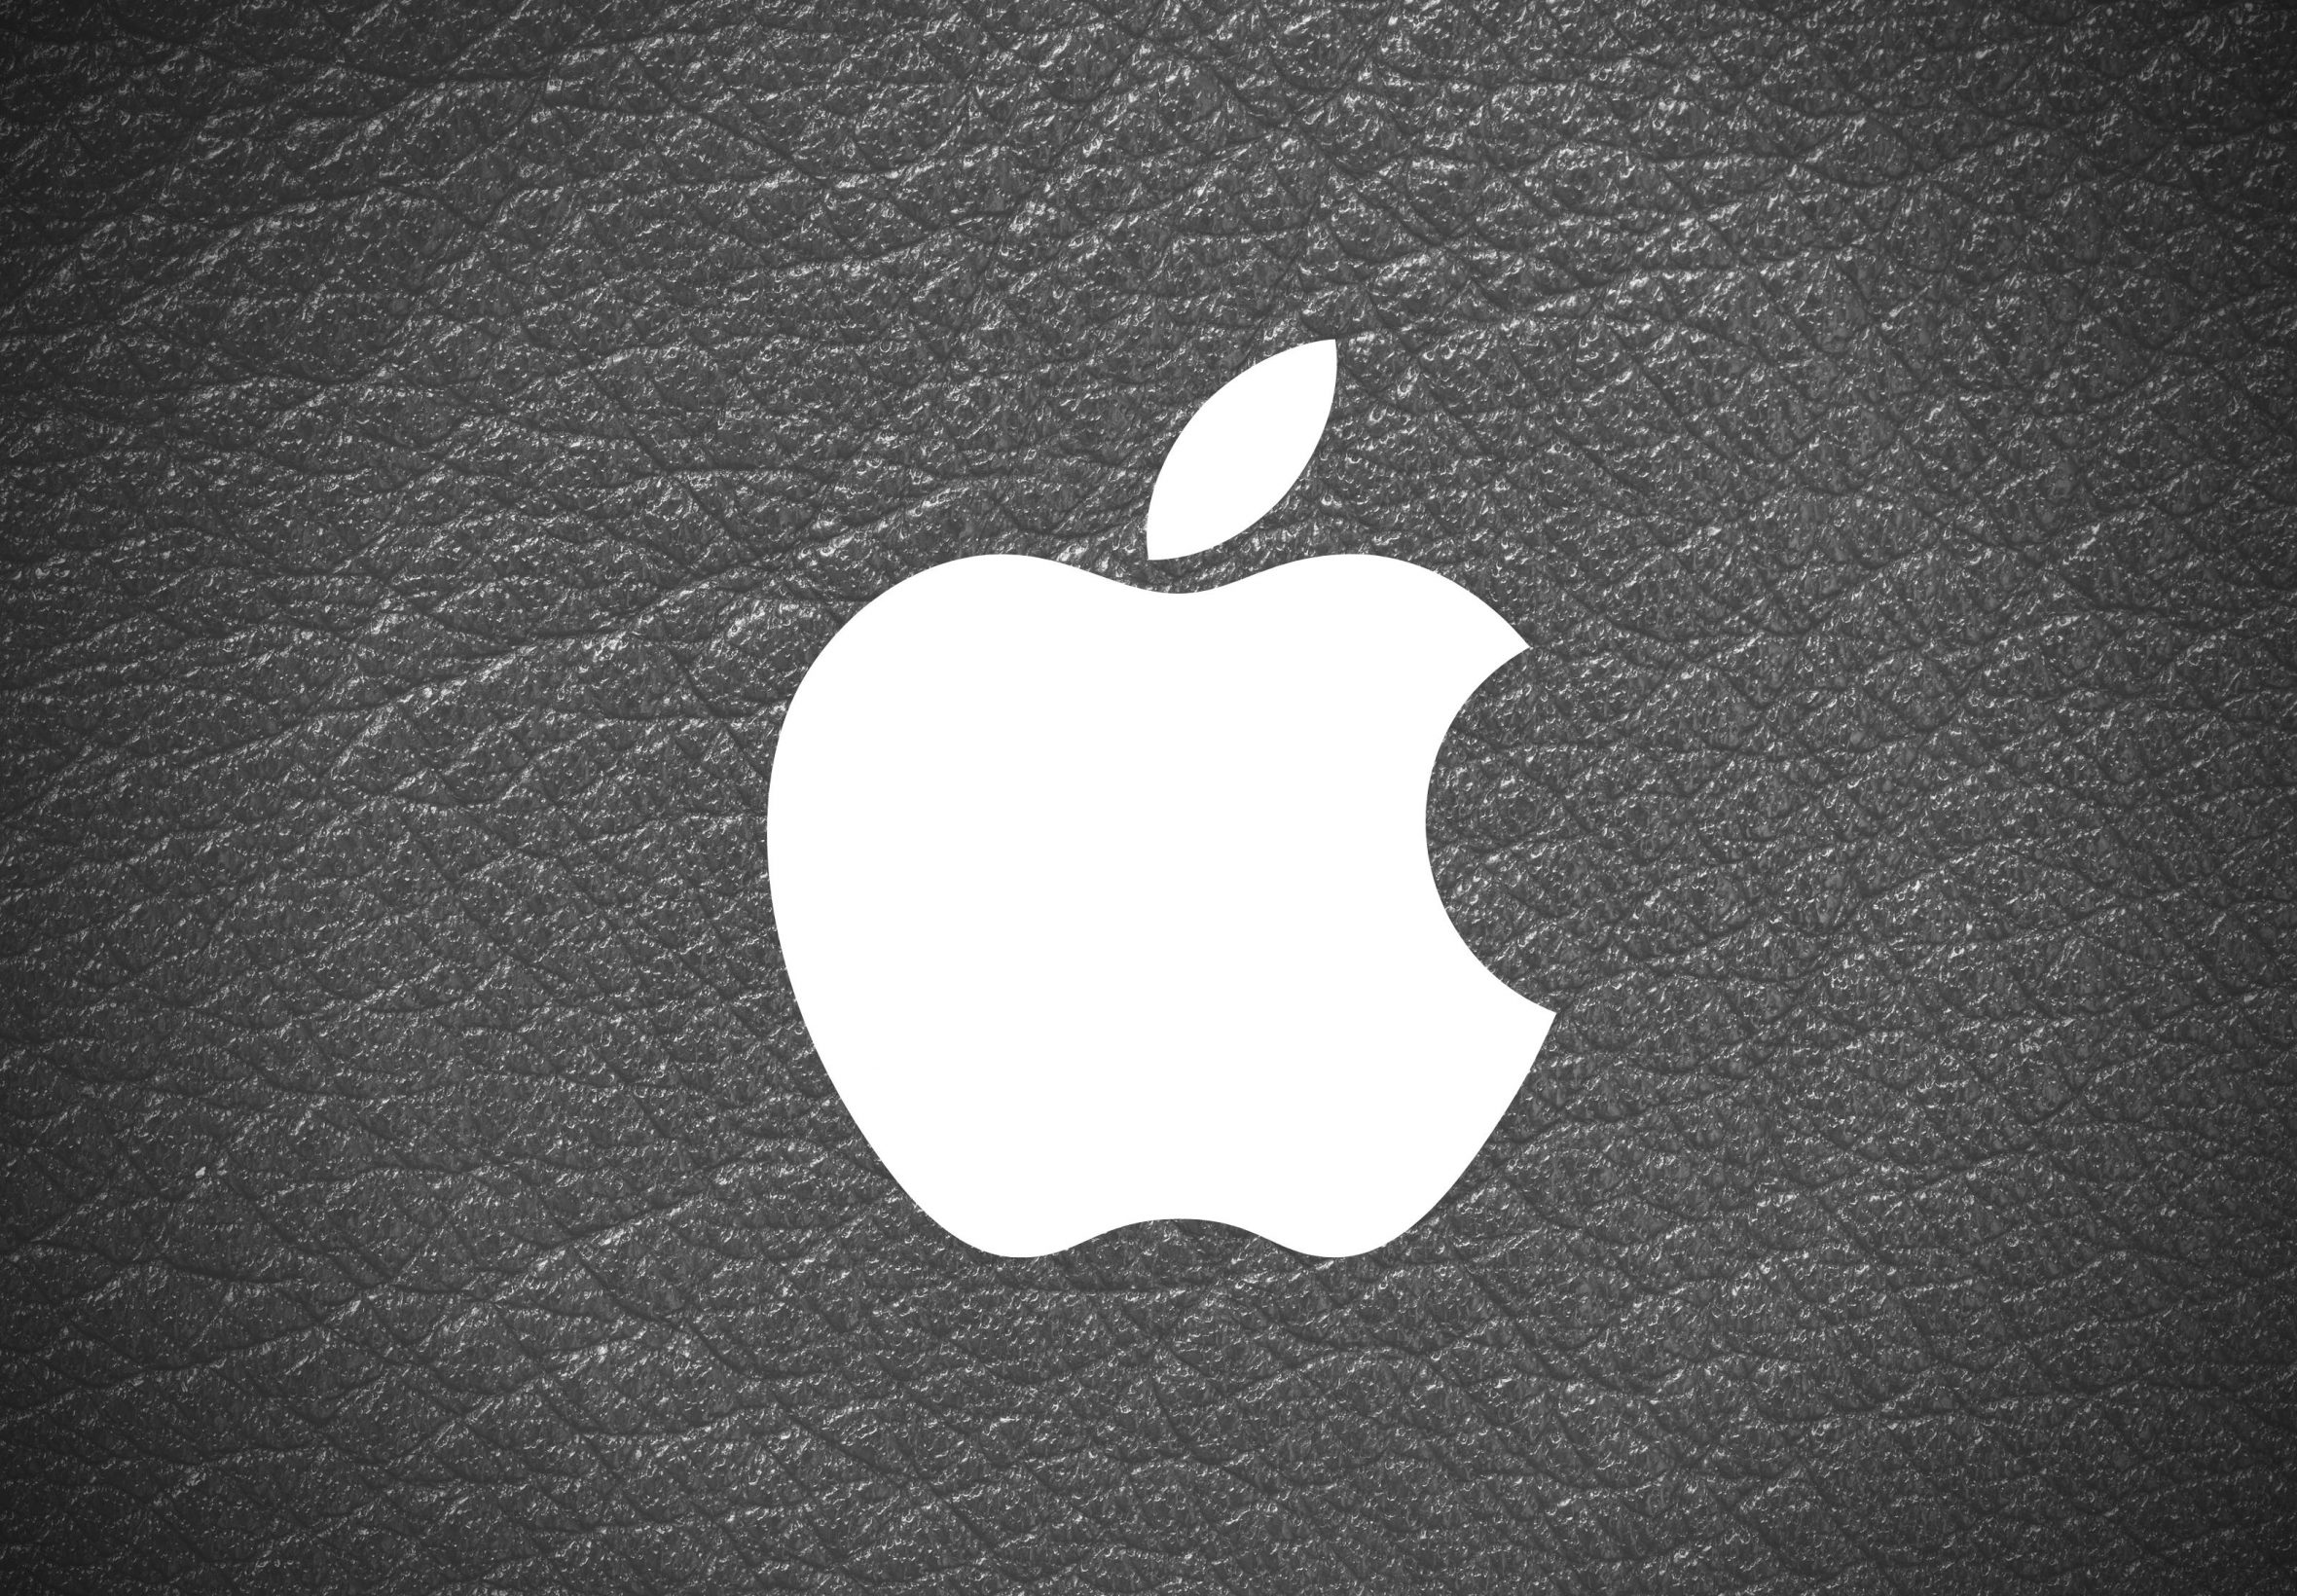 2360x1640 iPad Air wallpaper 4k Apple Logo Leather Black and White iPad Wallpaper 2360x1640 pixels resolution